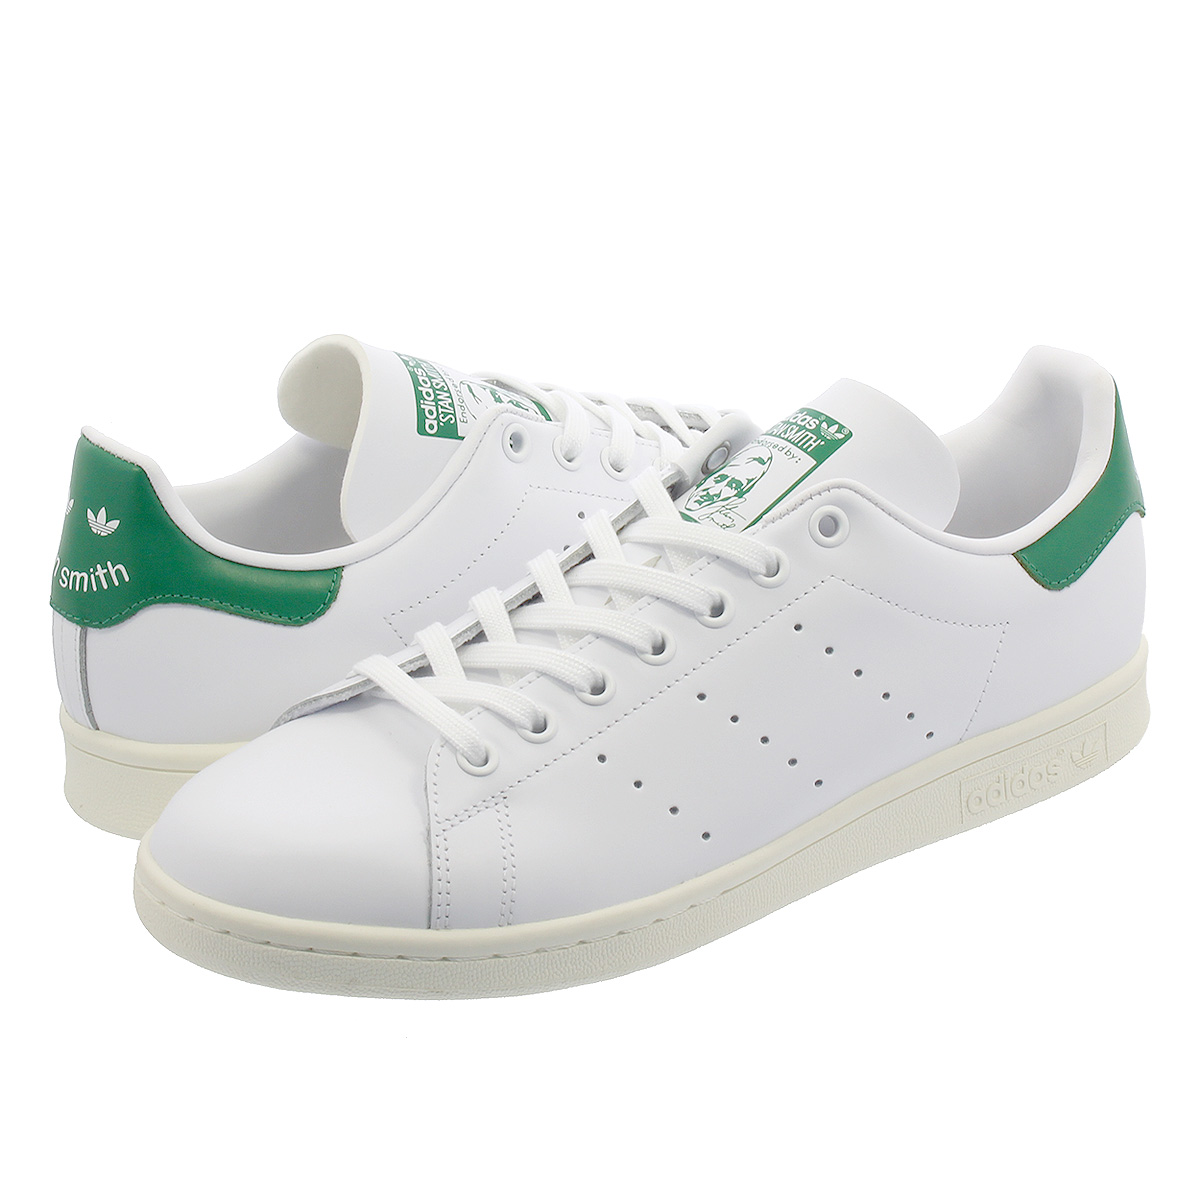 2adidas bold stan smith